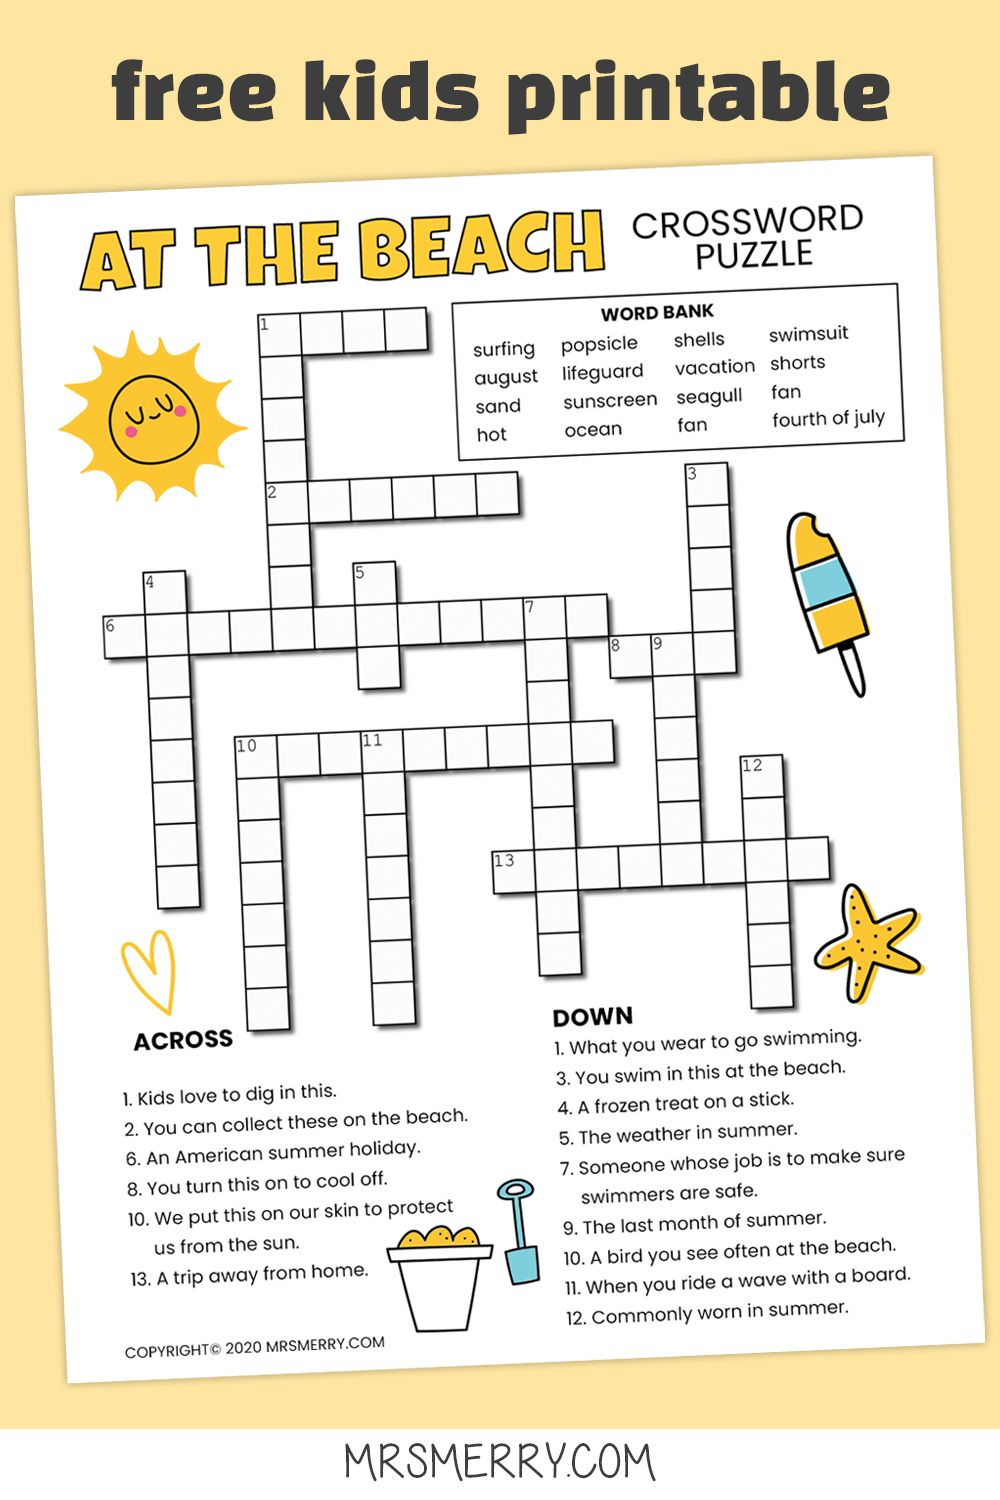 Beach Crossword Puzzle For Kids Free Printable Mrs Merry Printable Crossword Puzzles Puzzles For Kids Word Puzzles For Kids [ 1500 x 1000 Pixel ]